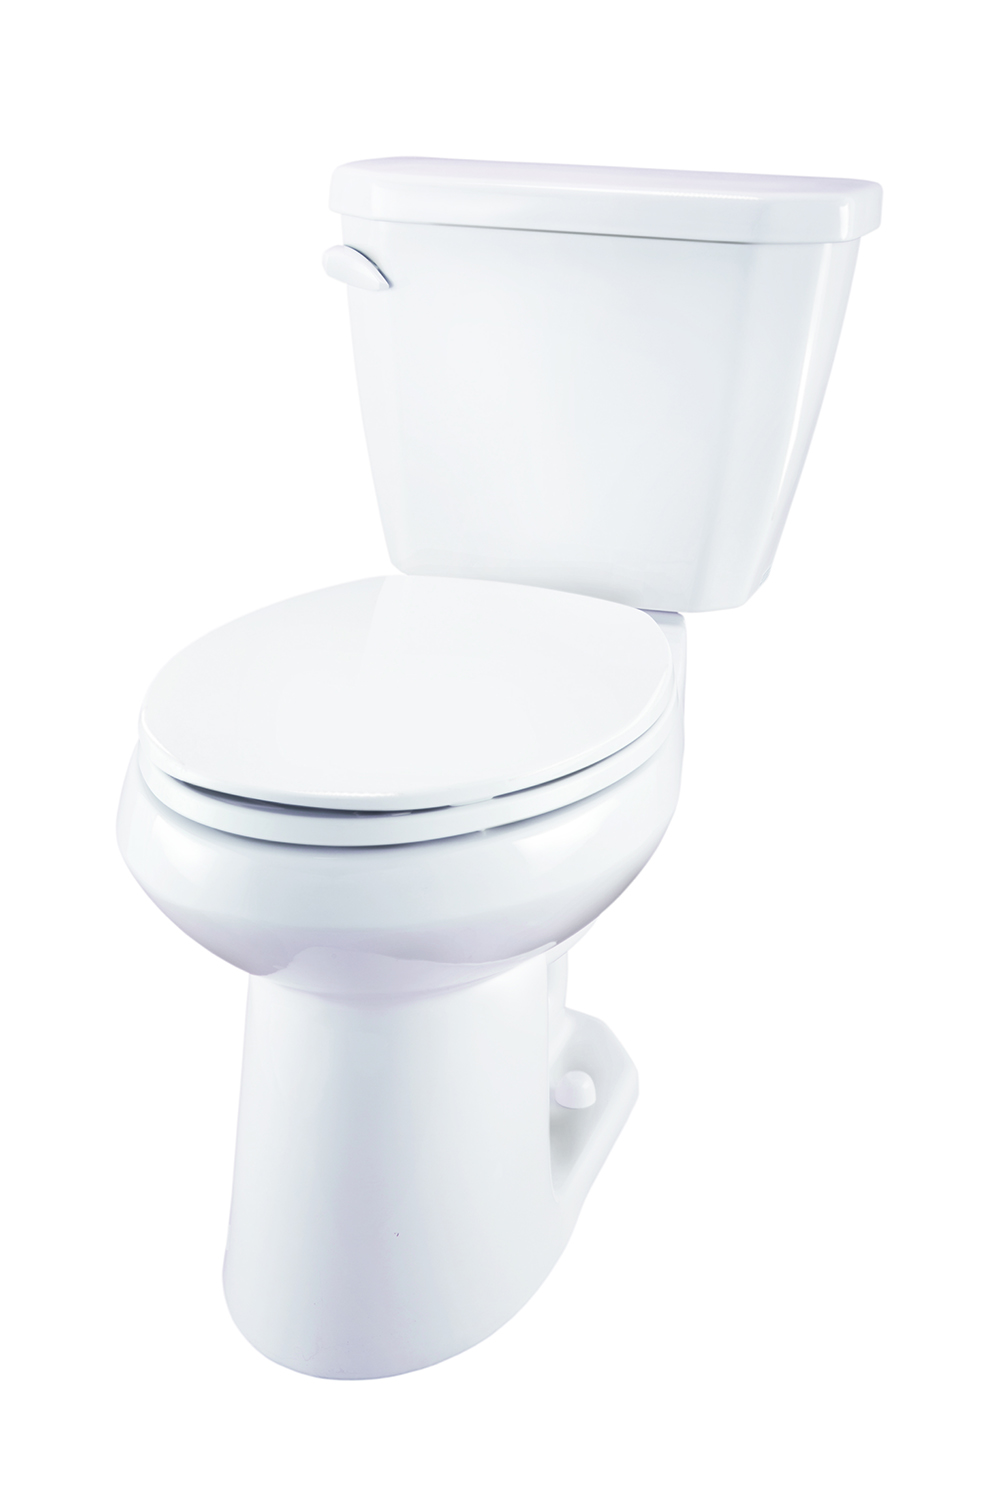 Viper 128 Gpf 14 Rough In Two Piece Elongated Ergoheight Toilet